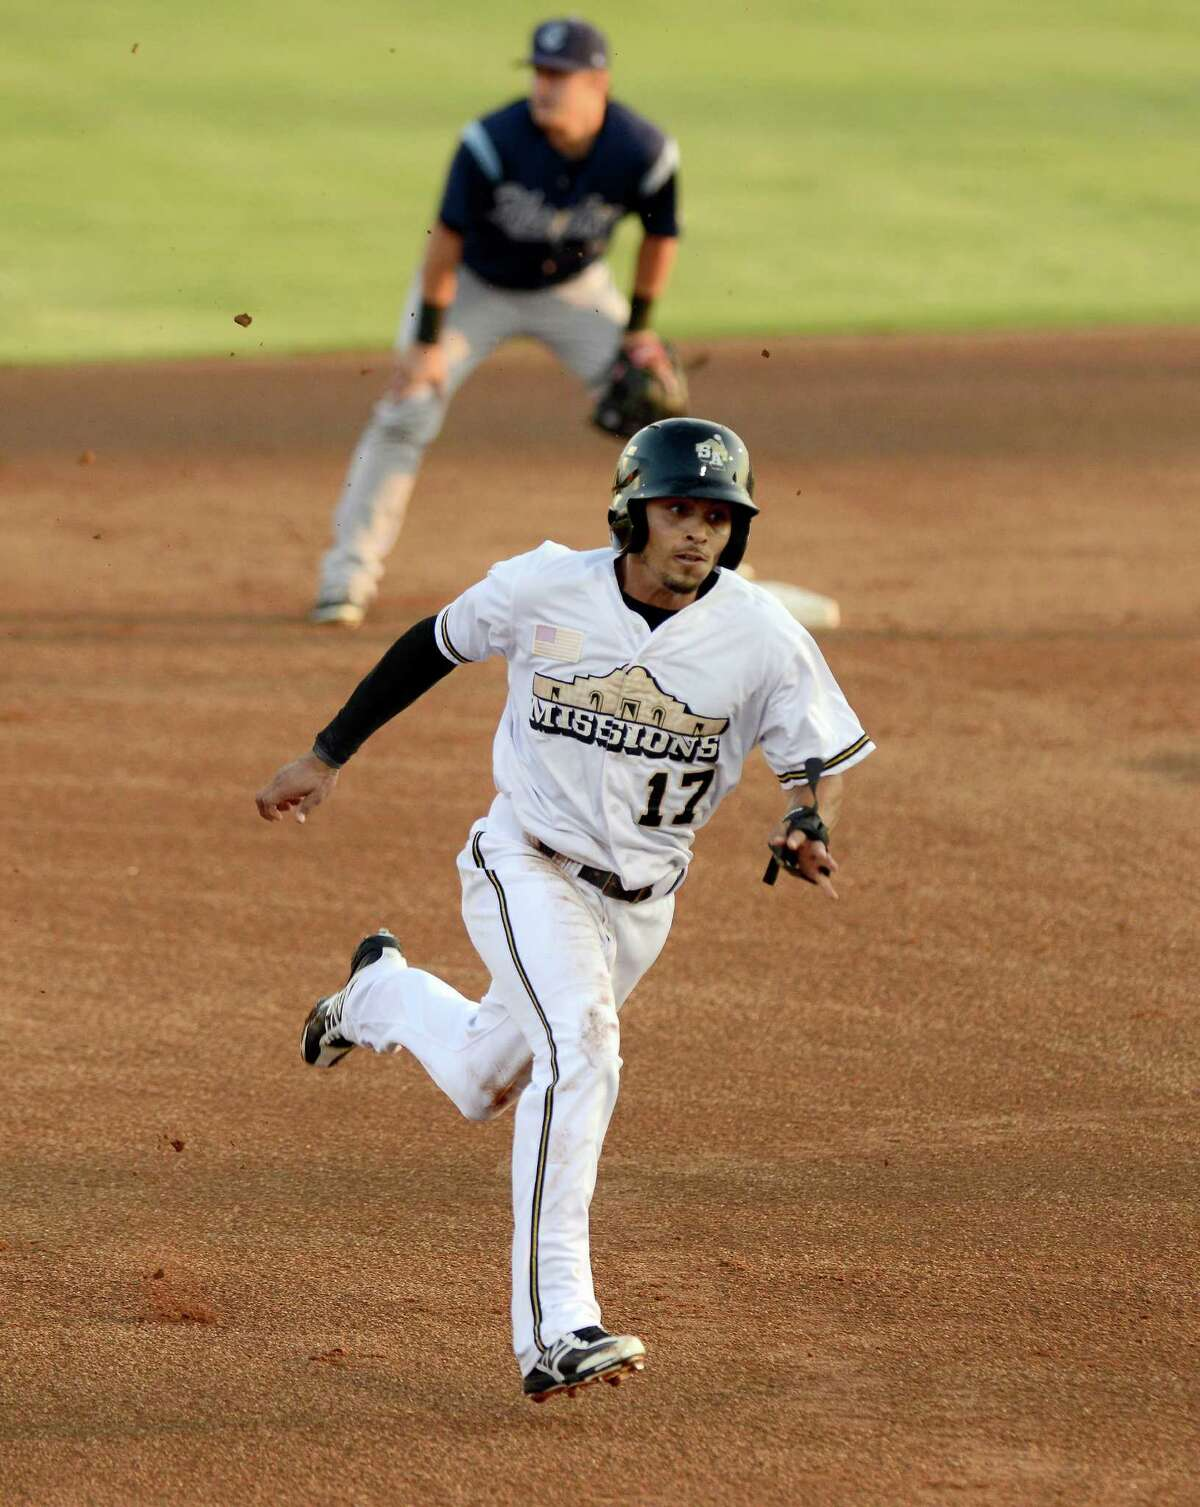 San Antonio Missions' Rico Noel runs to third during a Texas League playoff baseball game against the Corpus Christi Hooks, Friday, Sept. 6, 2013, at Nelson Wolff Municipal Stadium in San Antonio. (Darren Abate/For the Express-News)